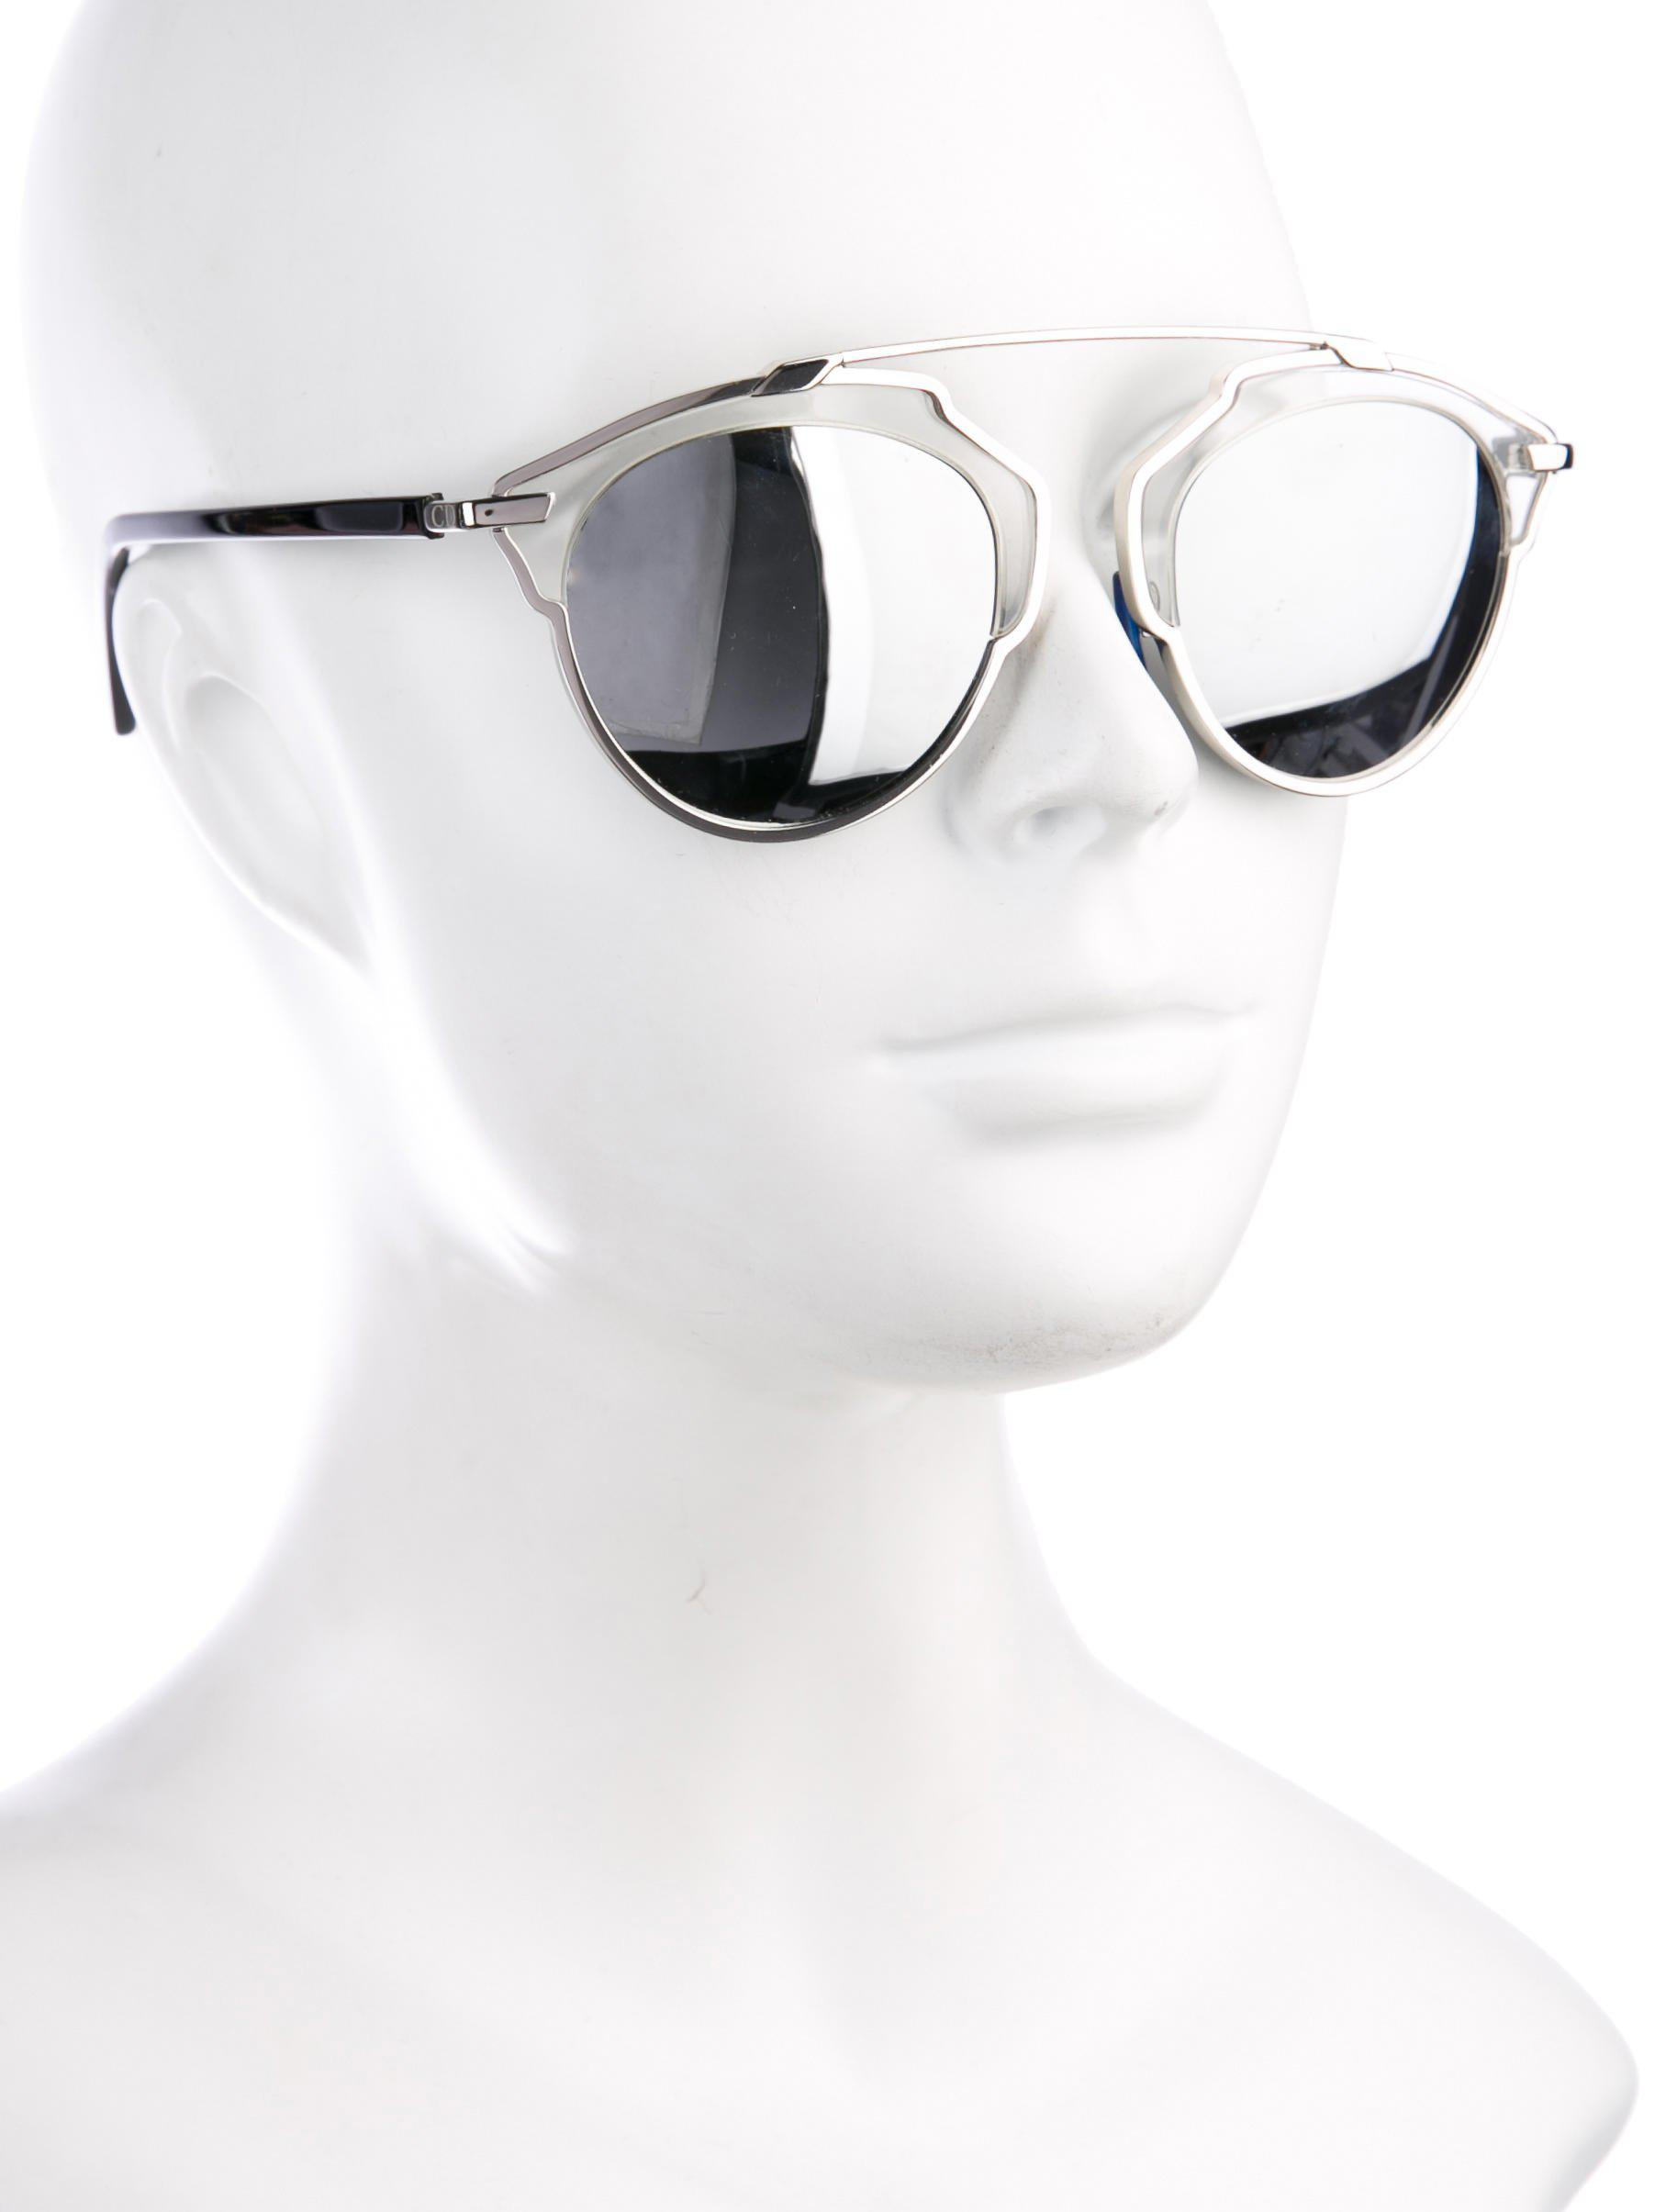 023425a6d513 Lyst - Dior Mirrored Metal Sunglasses Silver in Metallic